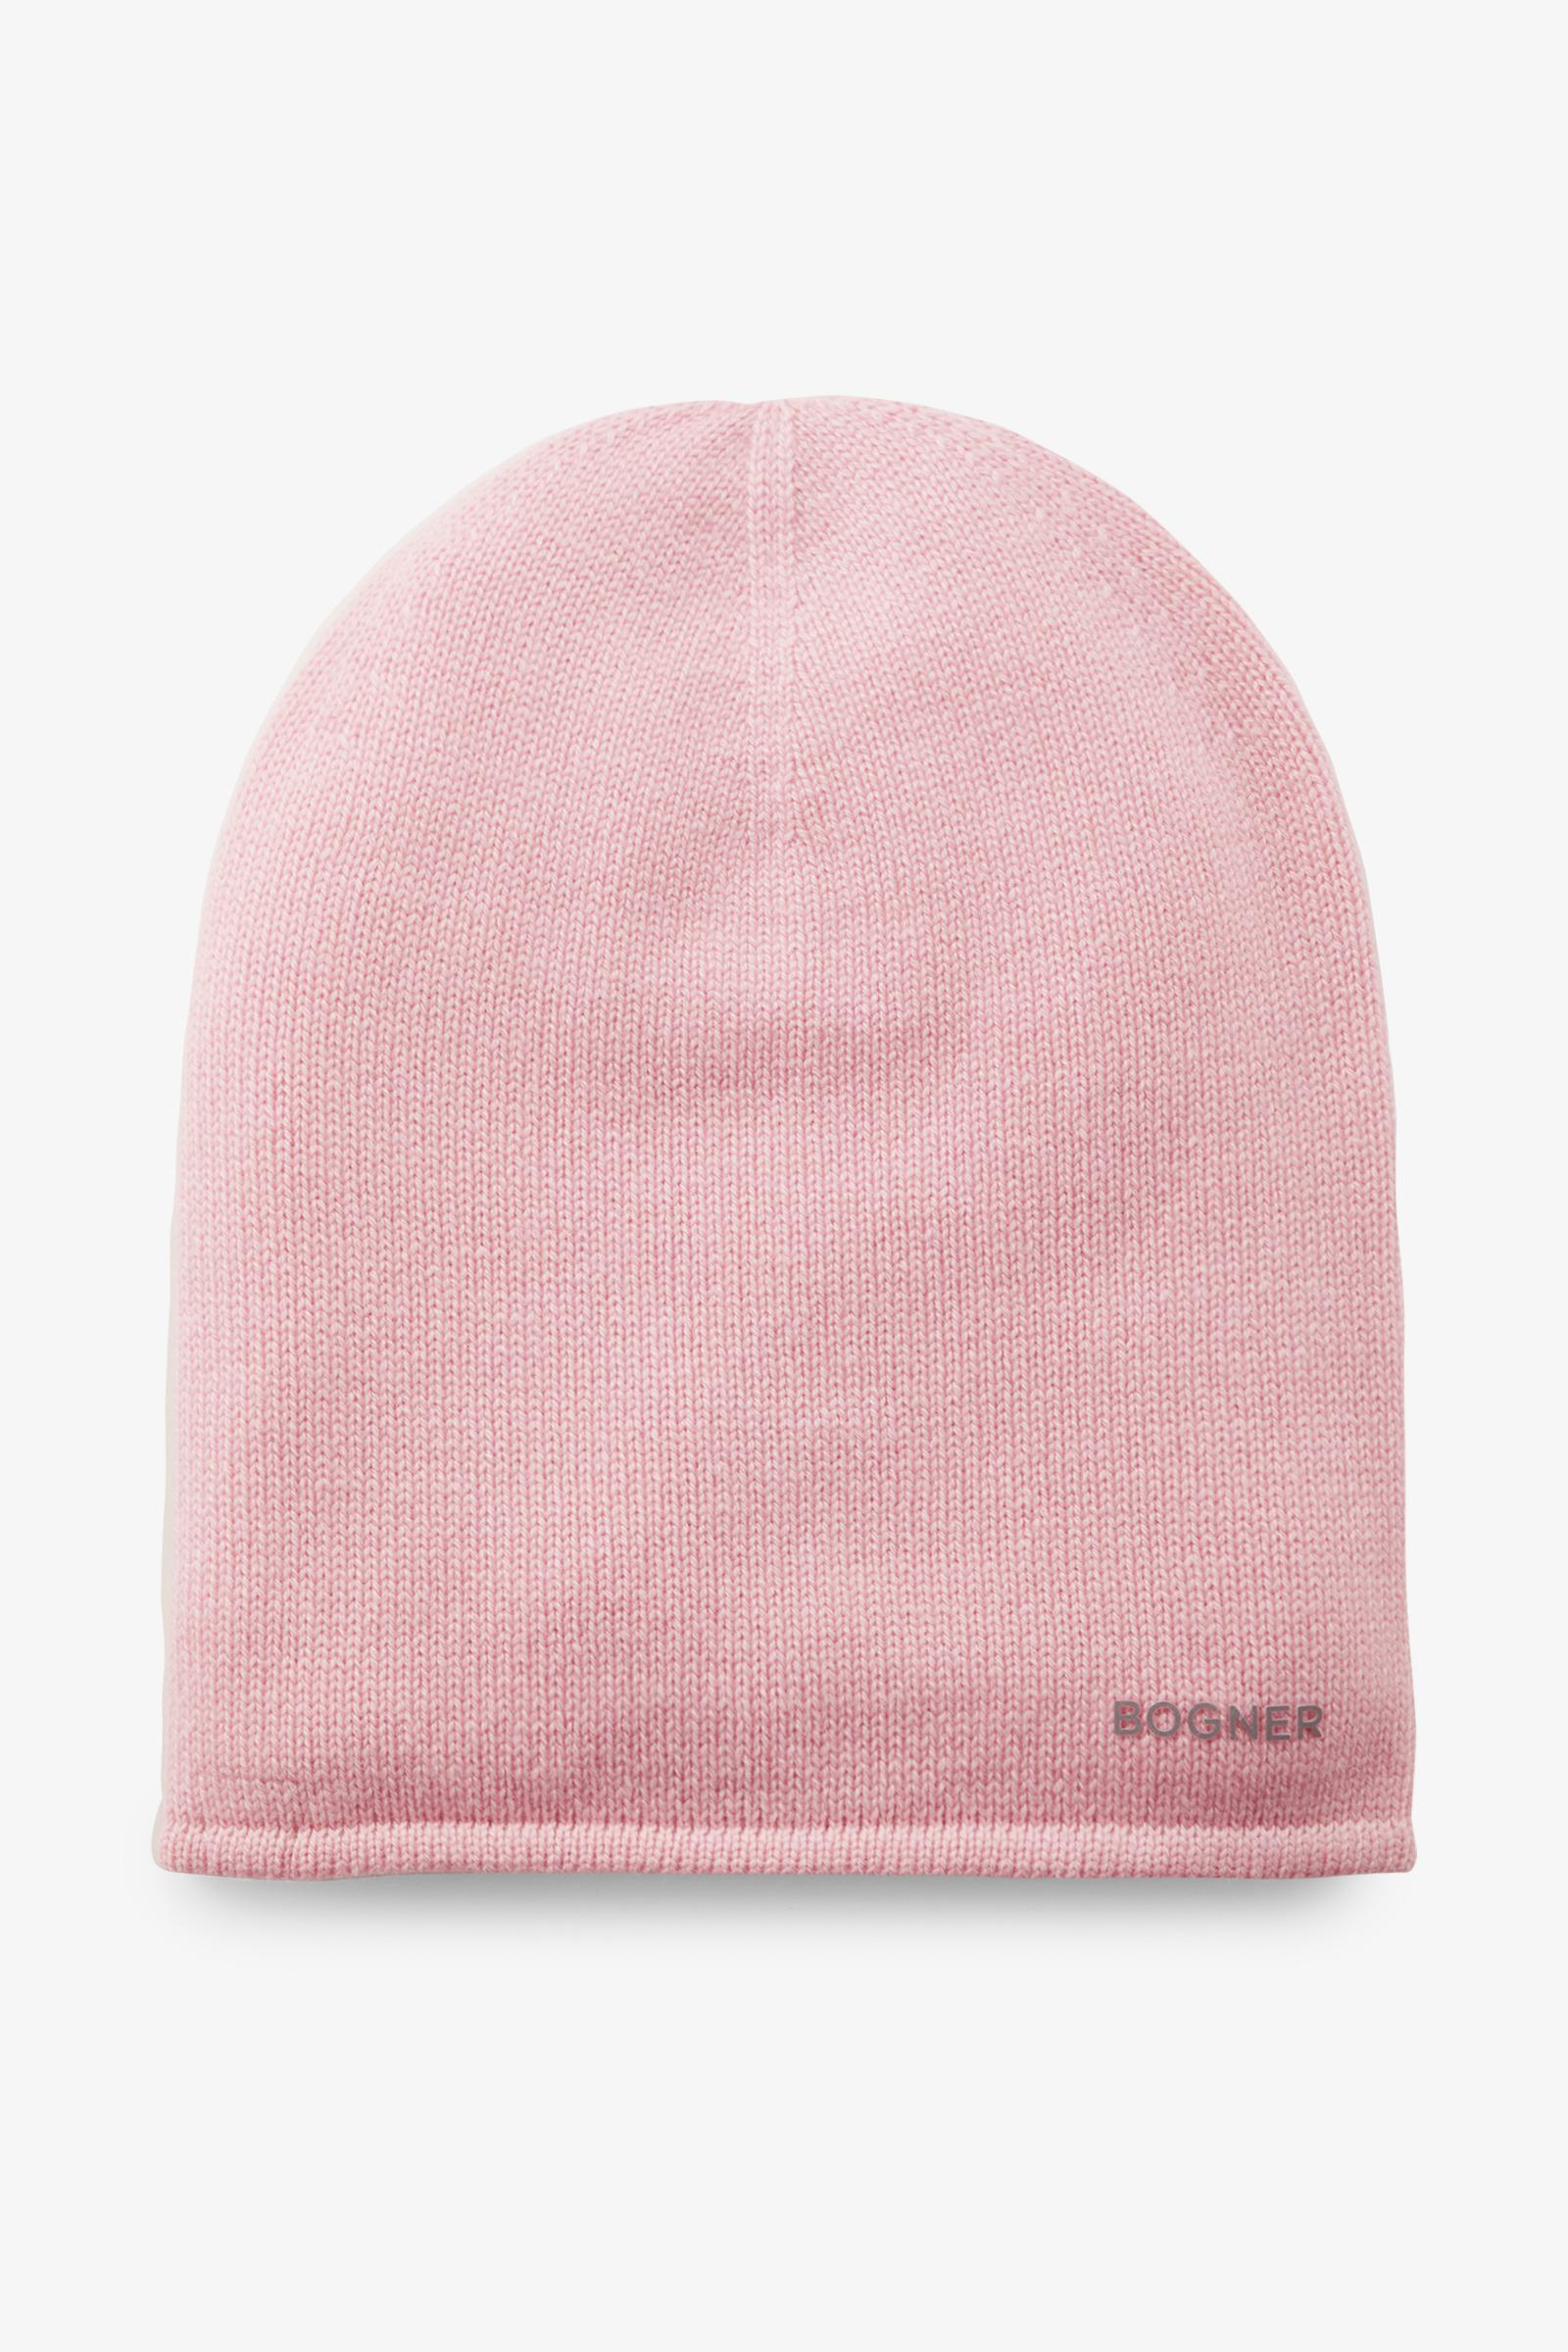 Bogner Marin Cashmere Beanie In Flamingo Pink in Pink - Lyst a6d7af8e4541